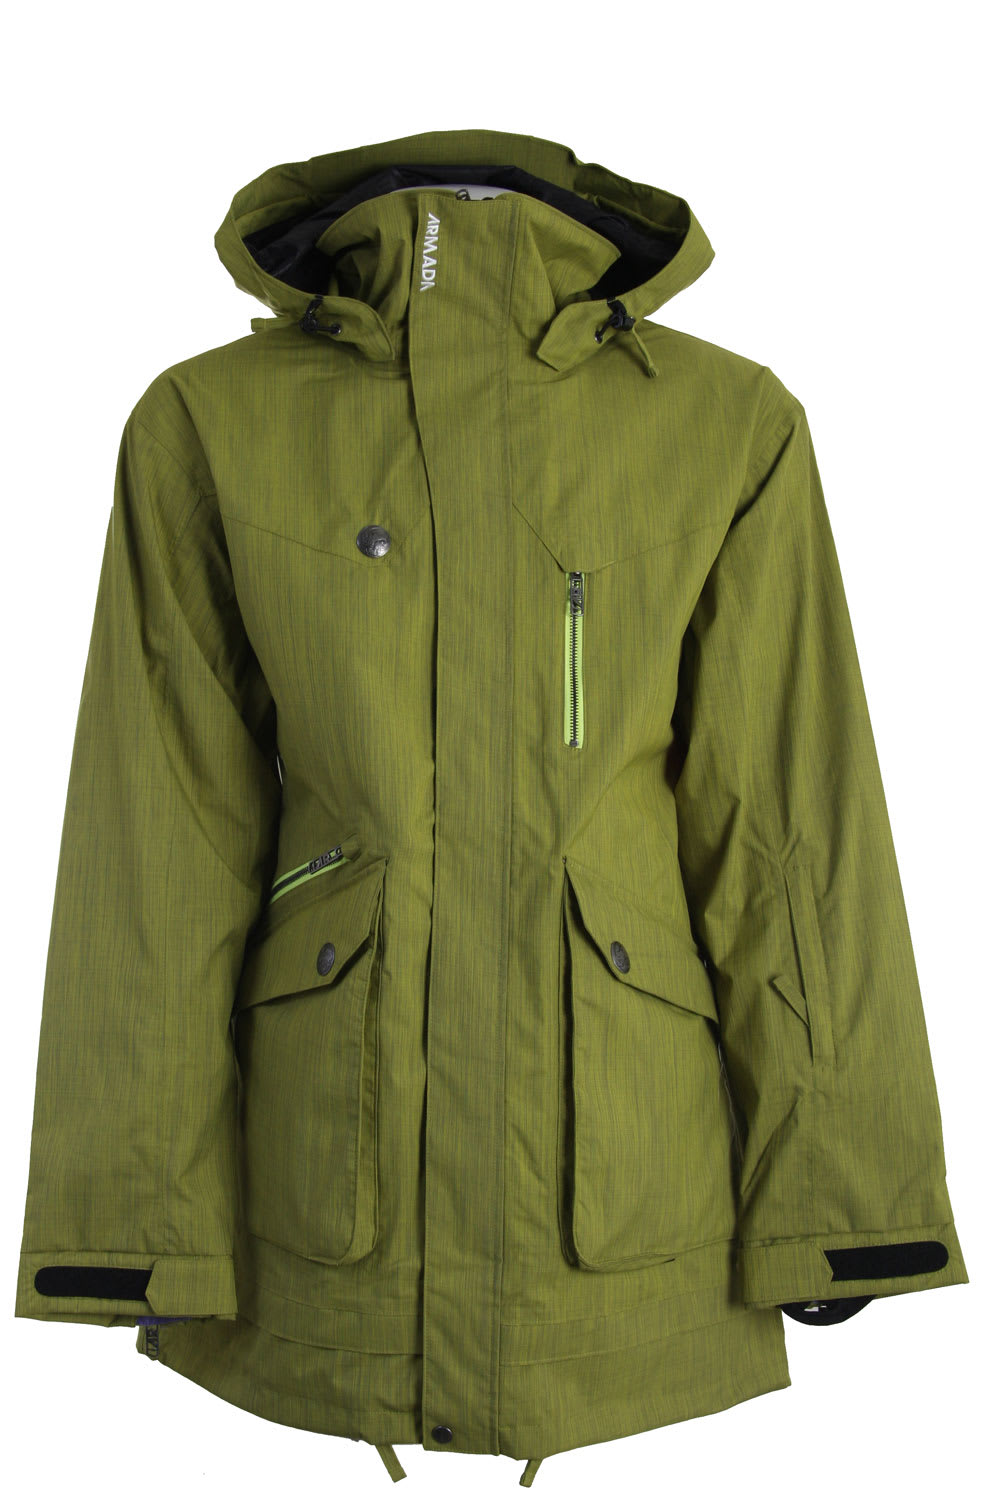 Shop for Armada Range Ski Jacket Lime - Men's